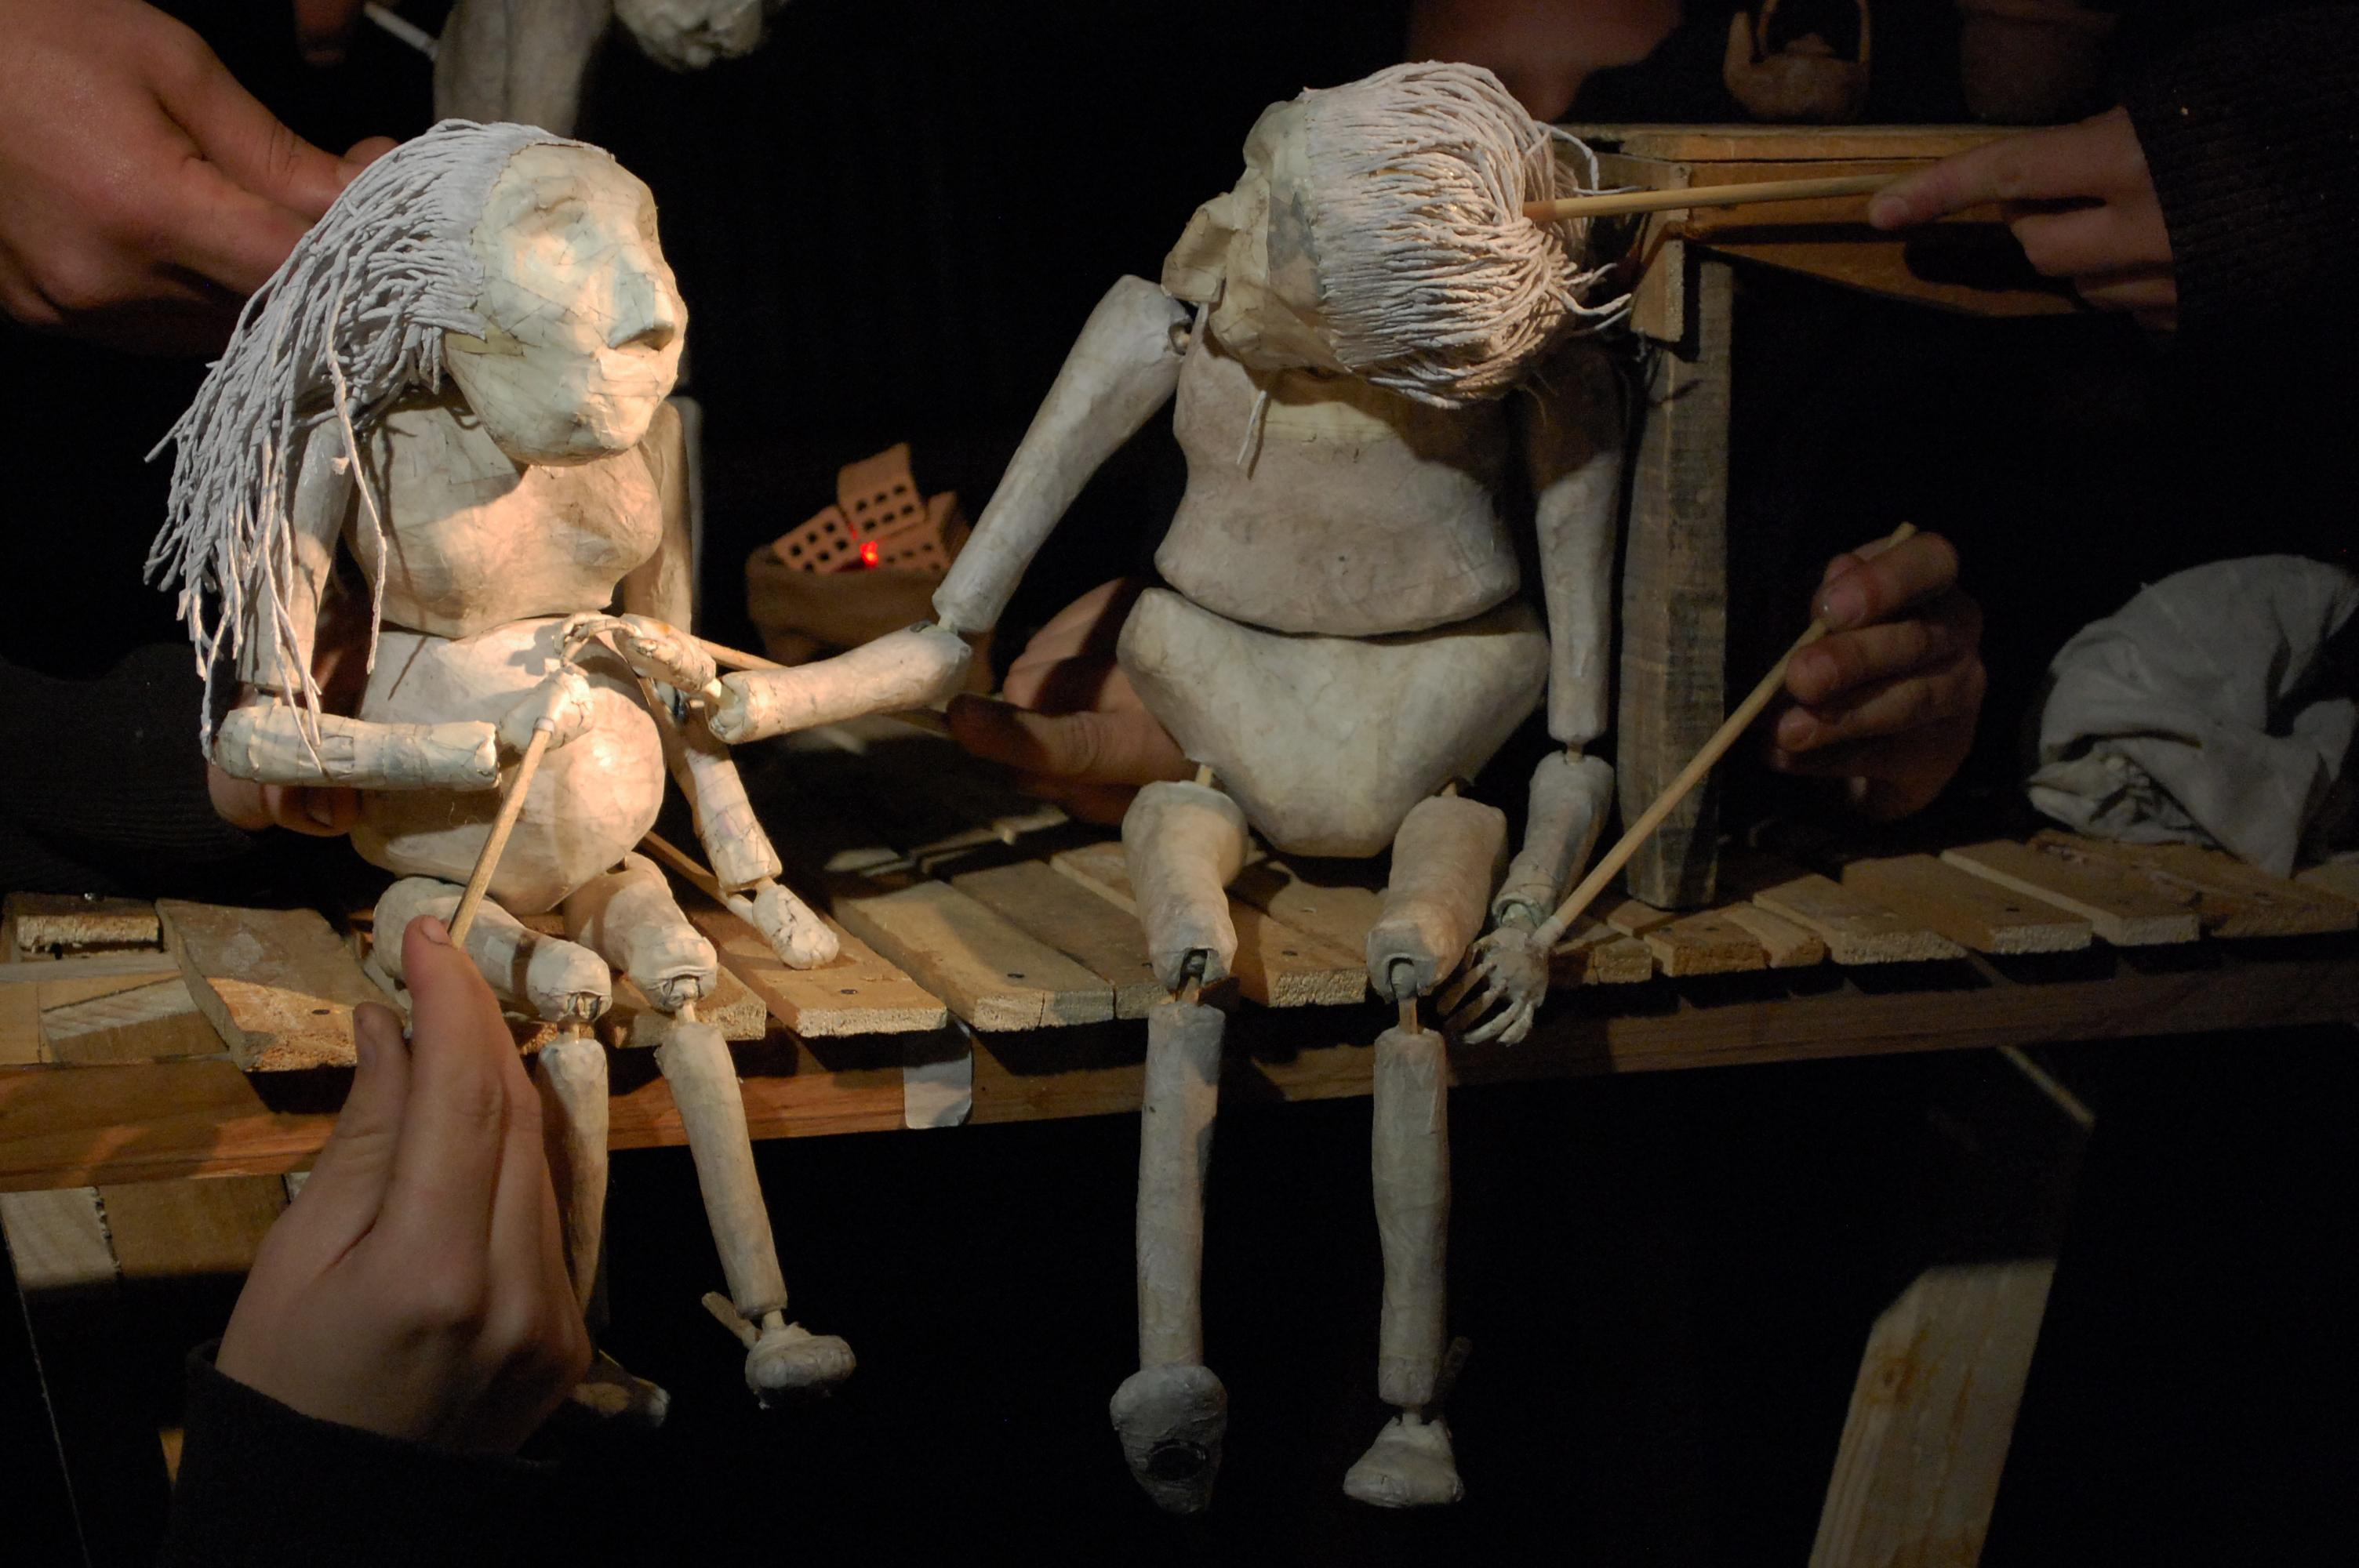 Two humanoid puppets hold hands while seated on a tiny wooden stage.